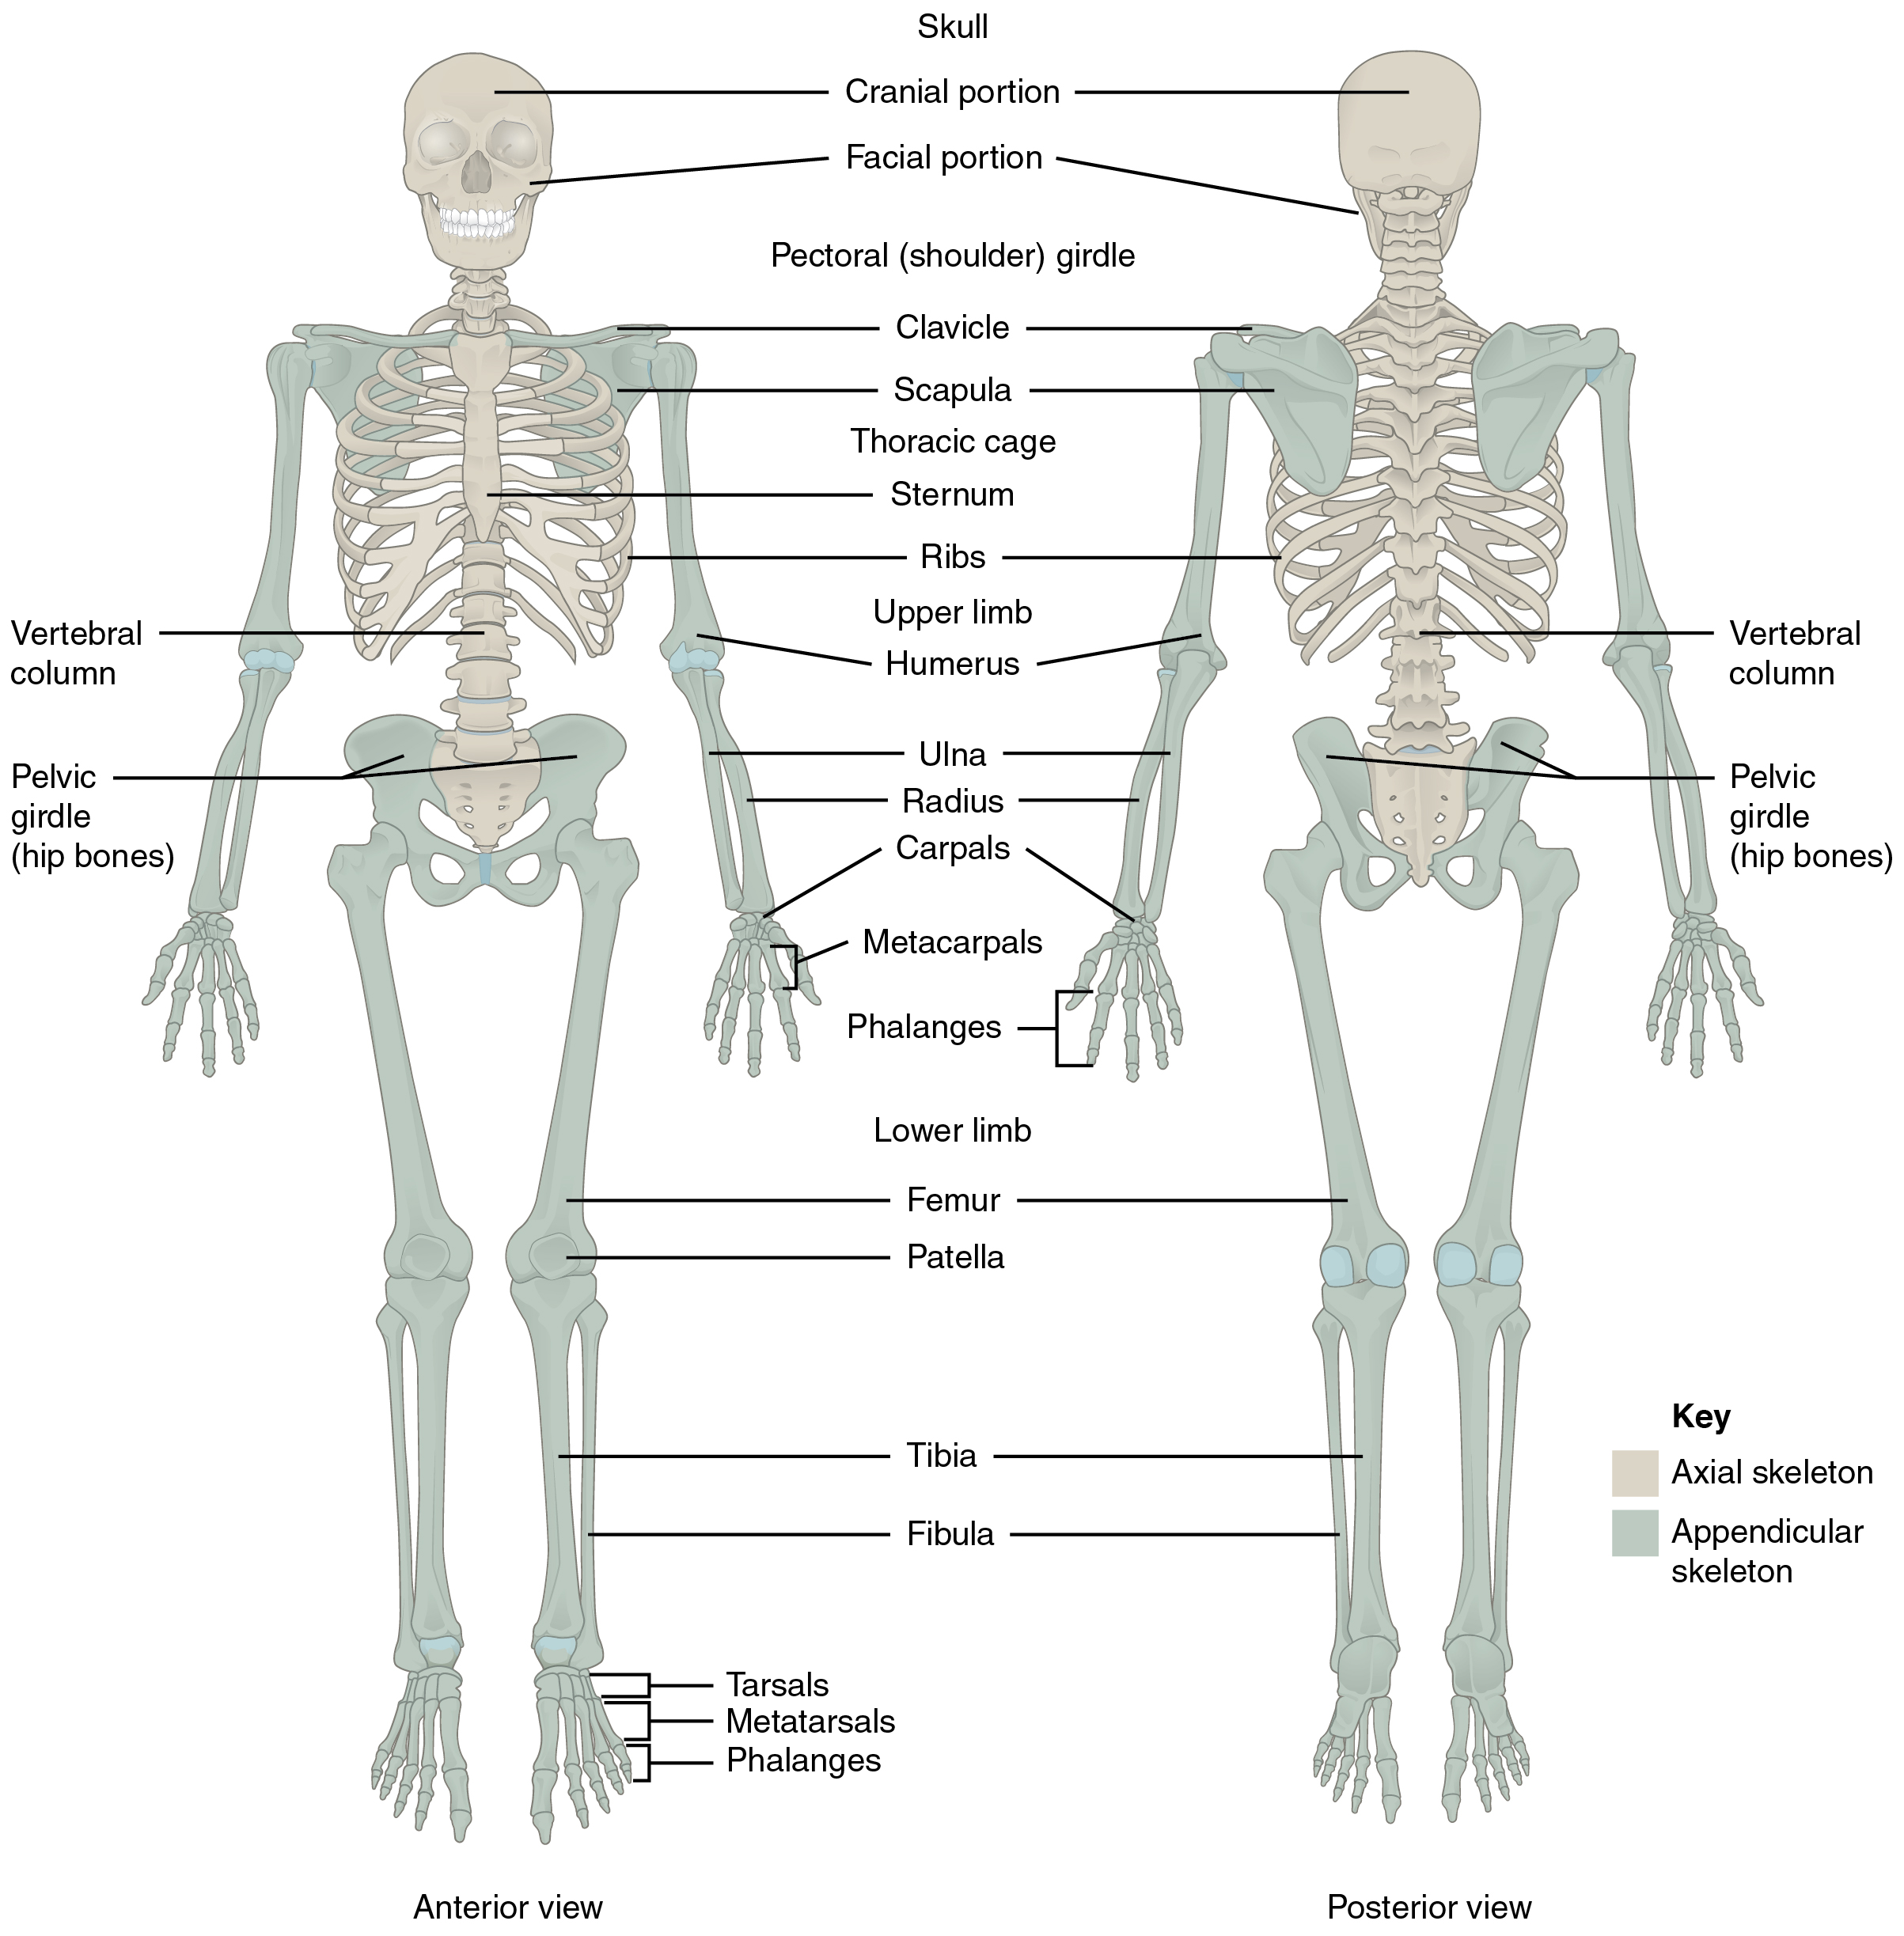 71 Divisions Of The Skeletal System Anatomy And Physiology